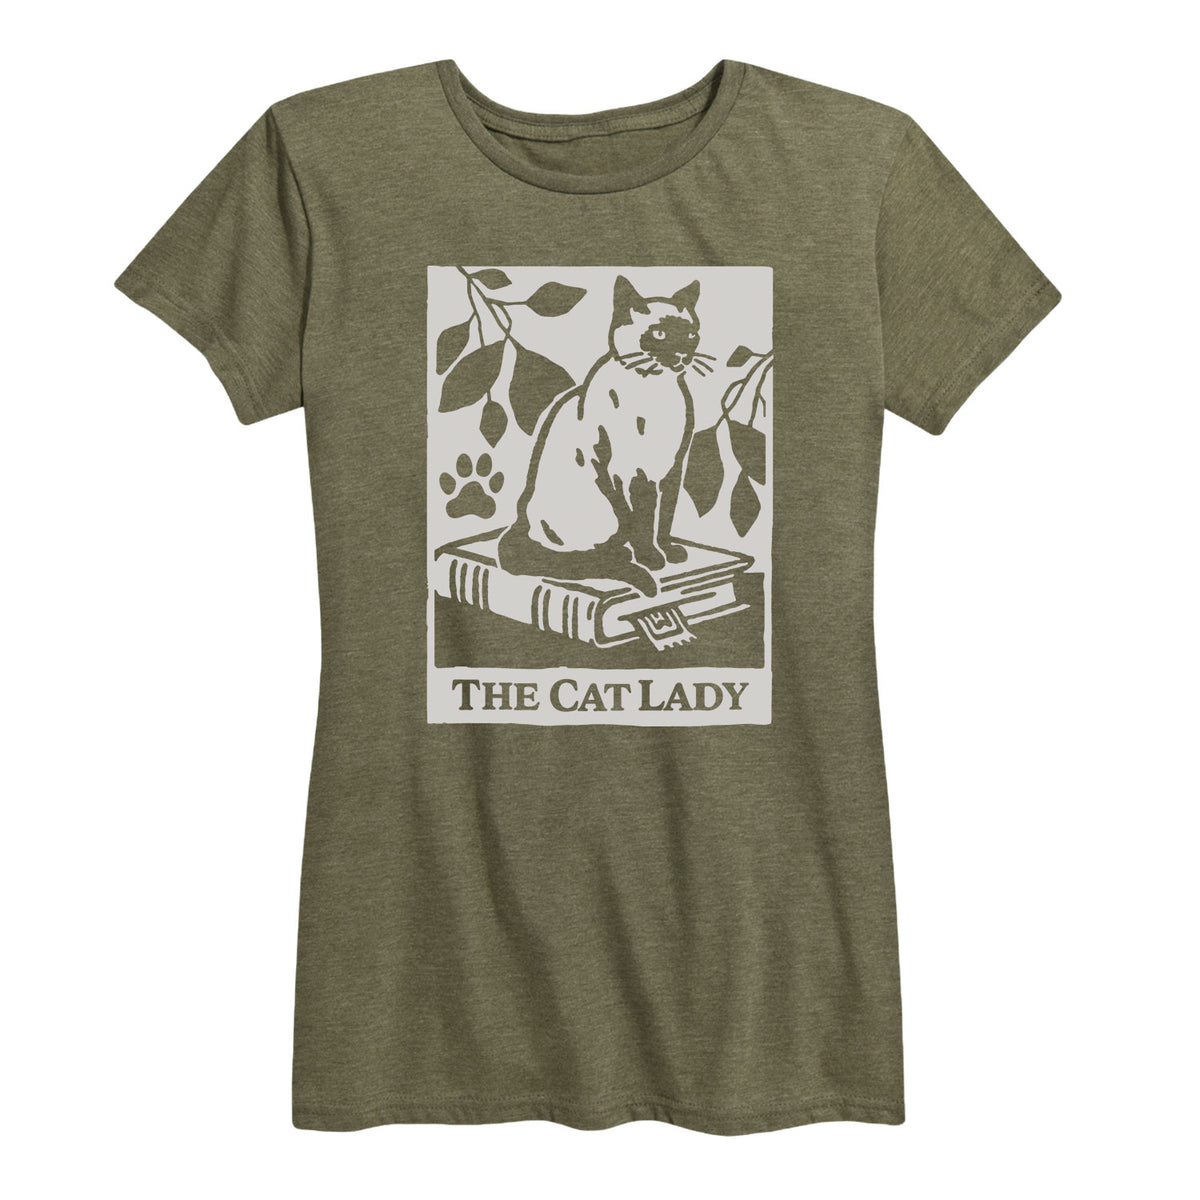 The Cat Lady - Women's Short Sleeve T-Shirt